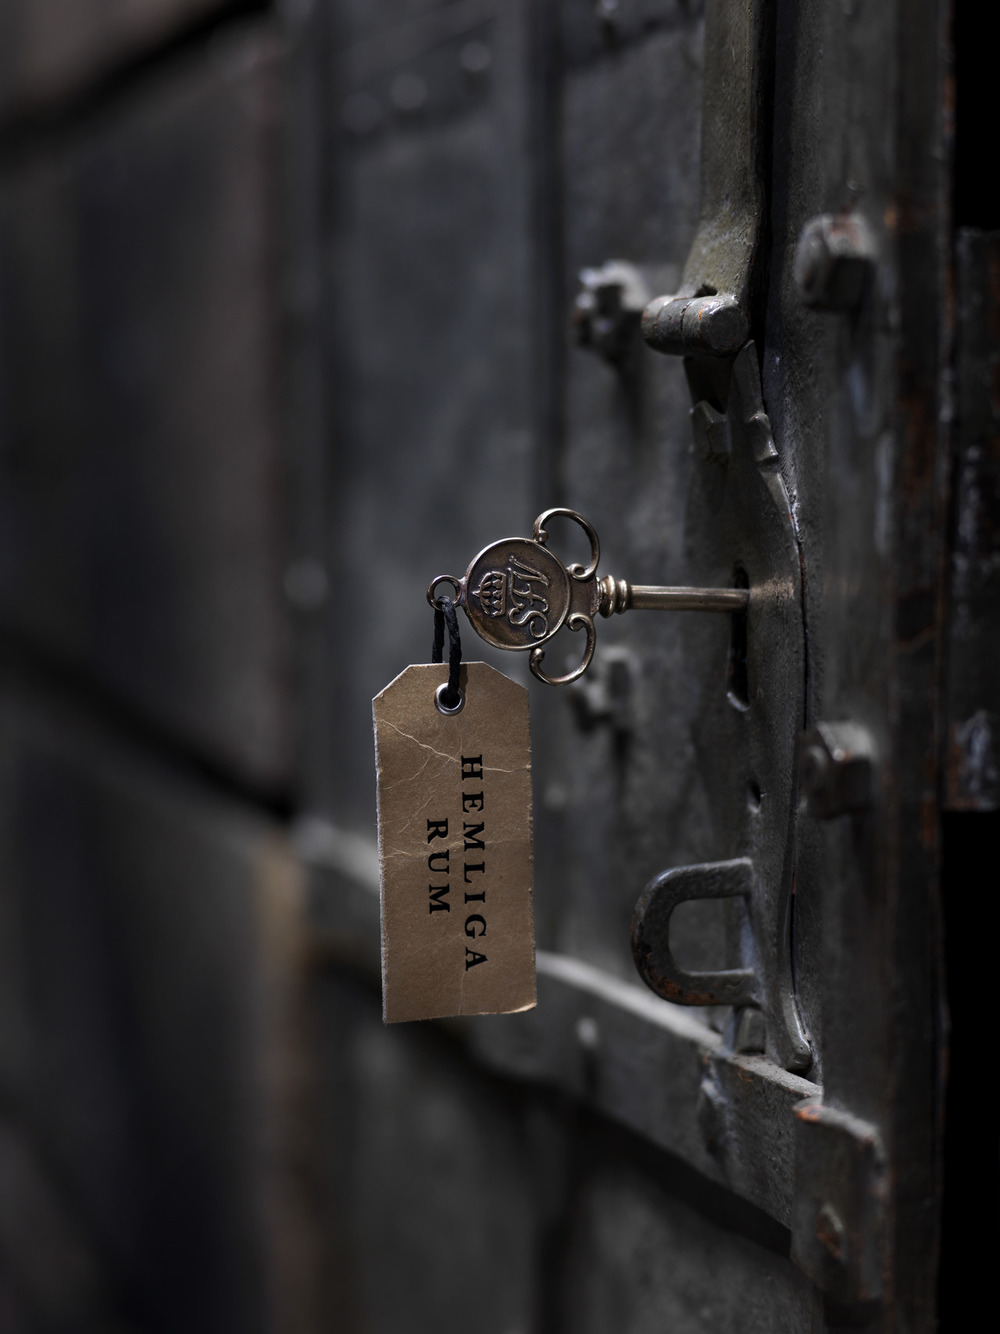 pixiewinksfairywhispers :     You never know what's behind each door, unless you take the time to unlock it.    ~Charlotte (PixieWinksFairyWhispers)